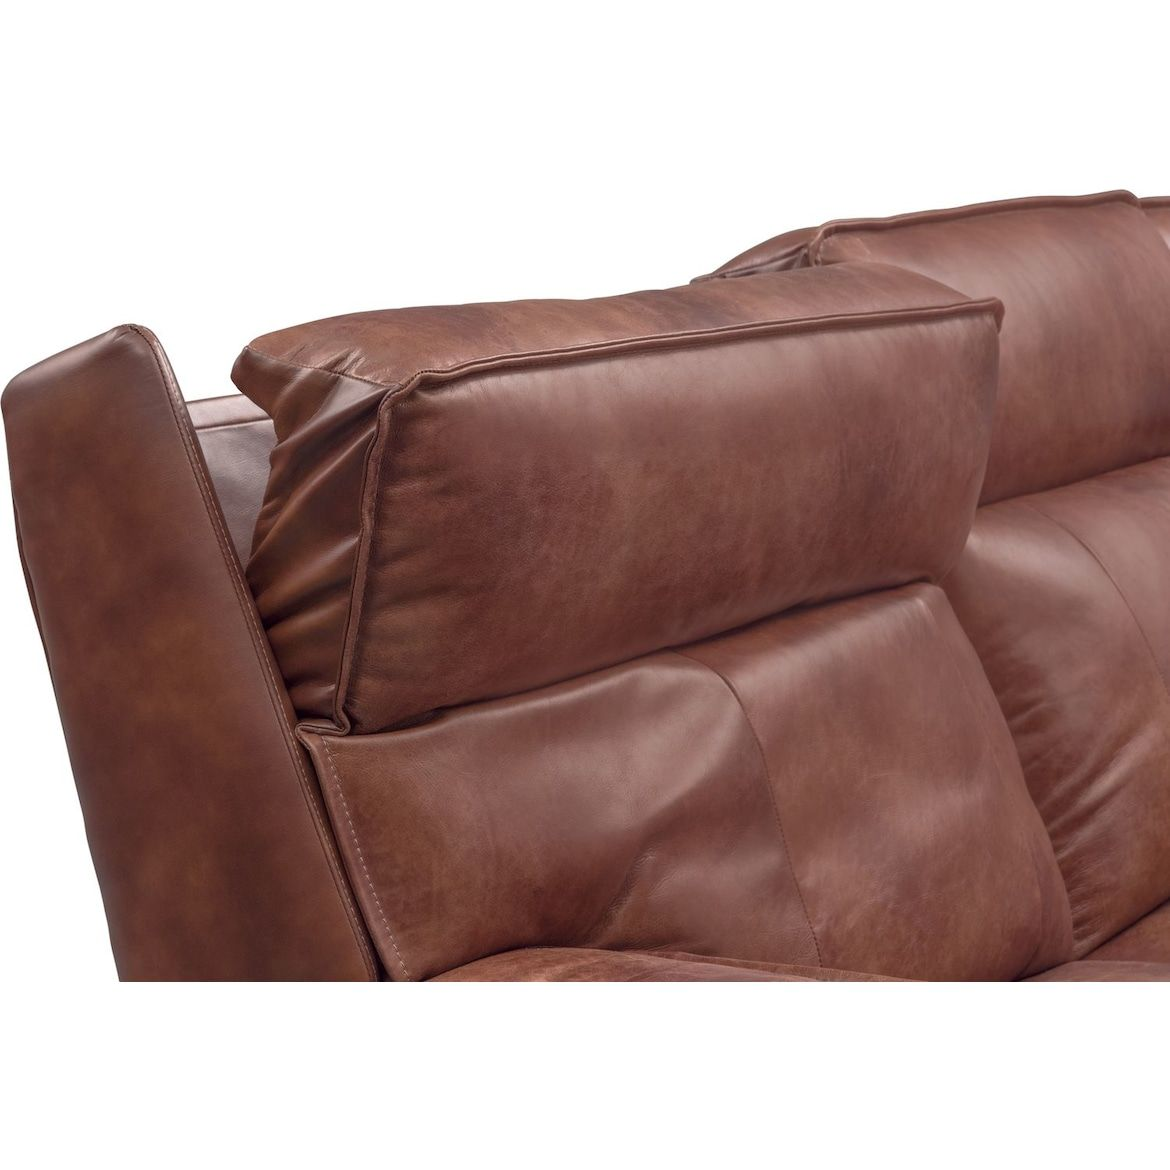 Fantastic Bradley Triple Power Reclining Sofa Loveseat And Recliner Pdpeps Interior Chair Design Pdpepsorg